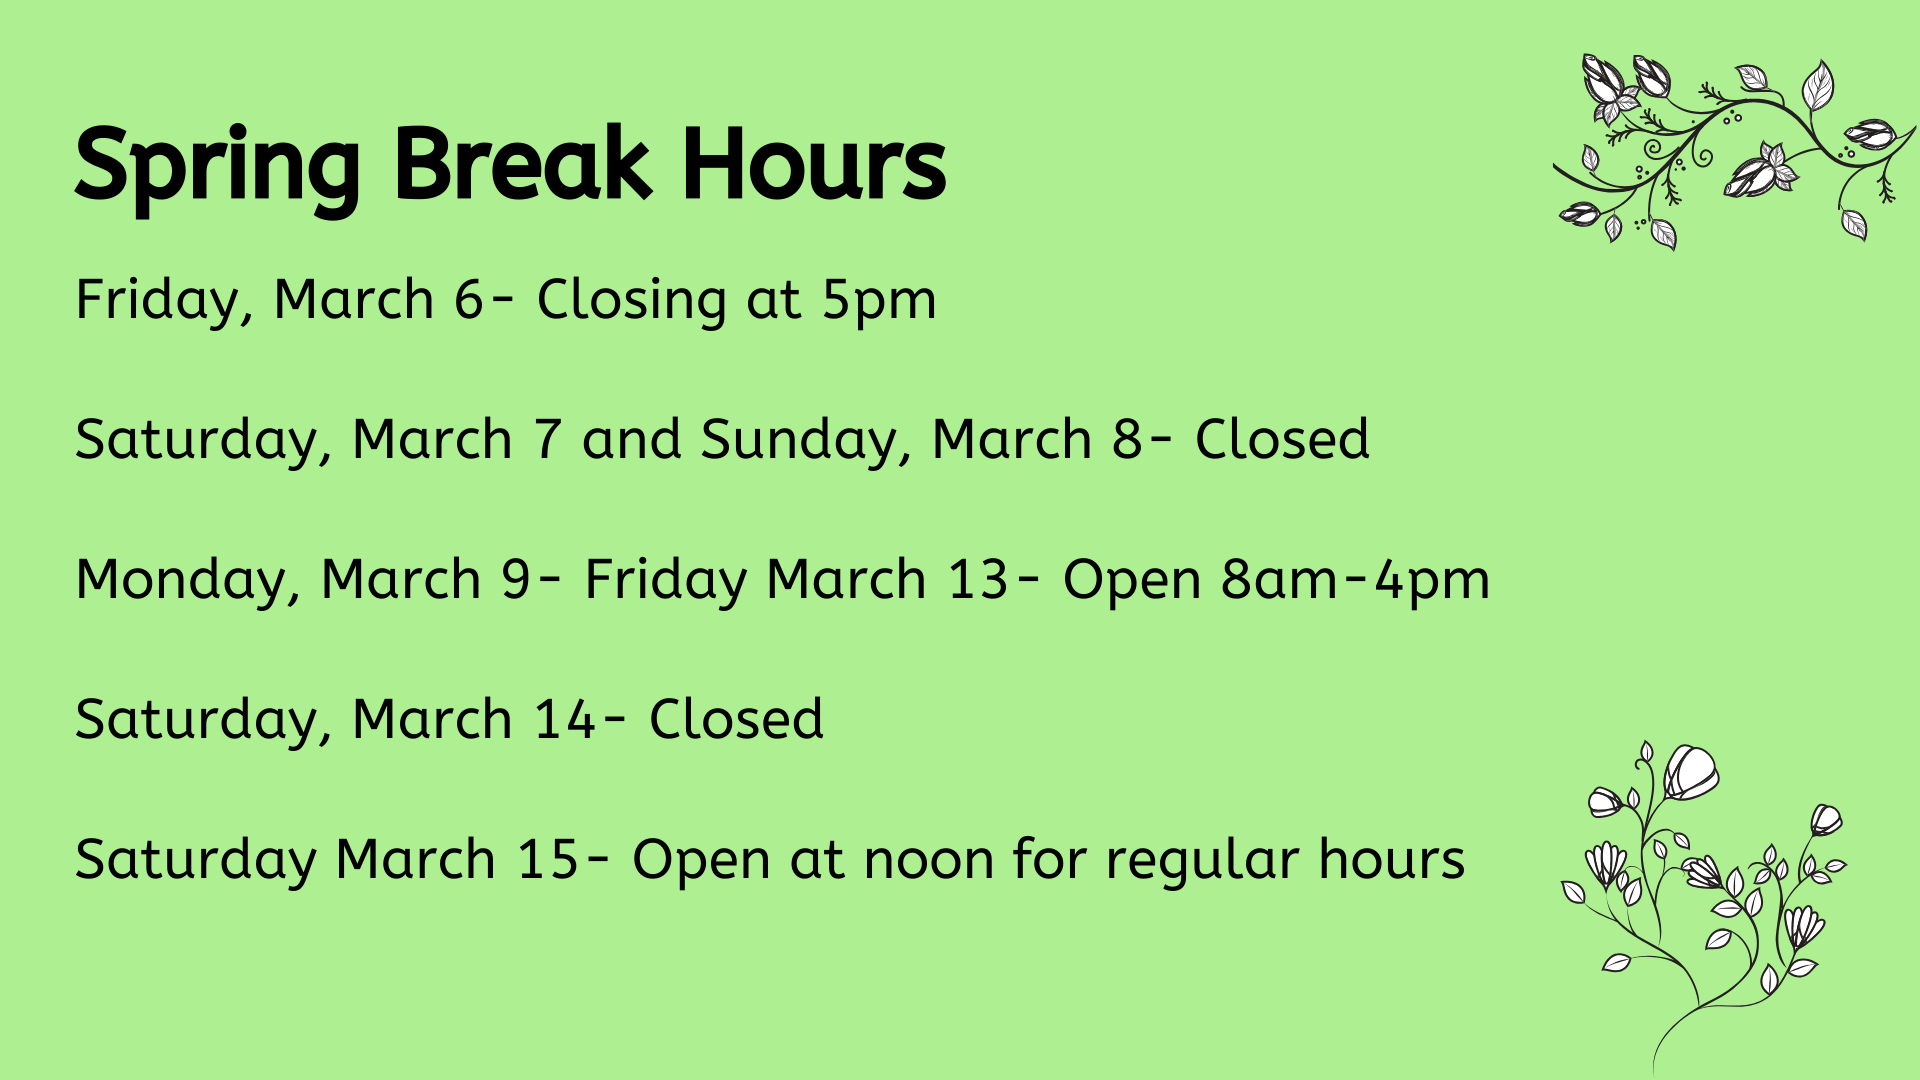 Spring Break Hours, Friday, March 6- Closing at 5pm  Saturday, March 7 and Sunday, March 8- Closed  Monday, March 9- Friday March 13- Open 8am-4pm  Saturday, March 14- Closed  Saturday March 15- Open at noon for regular hours